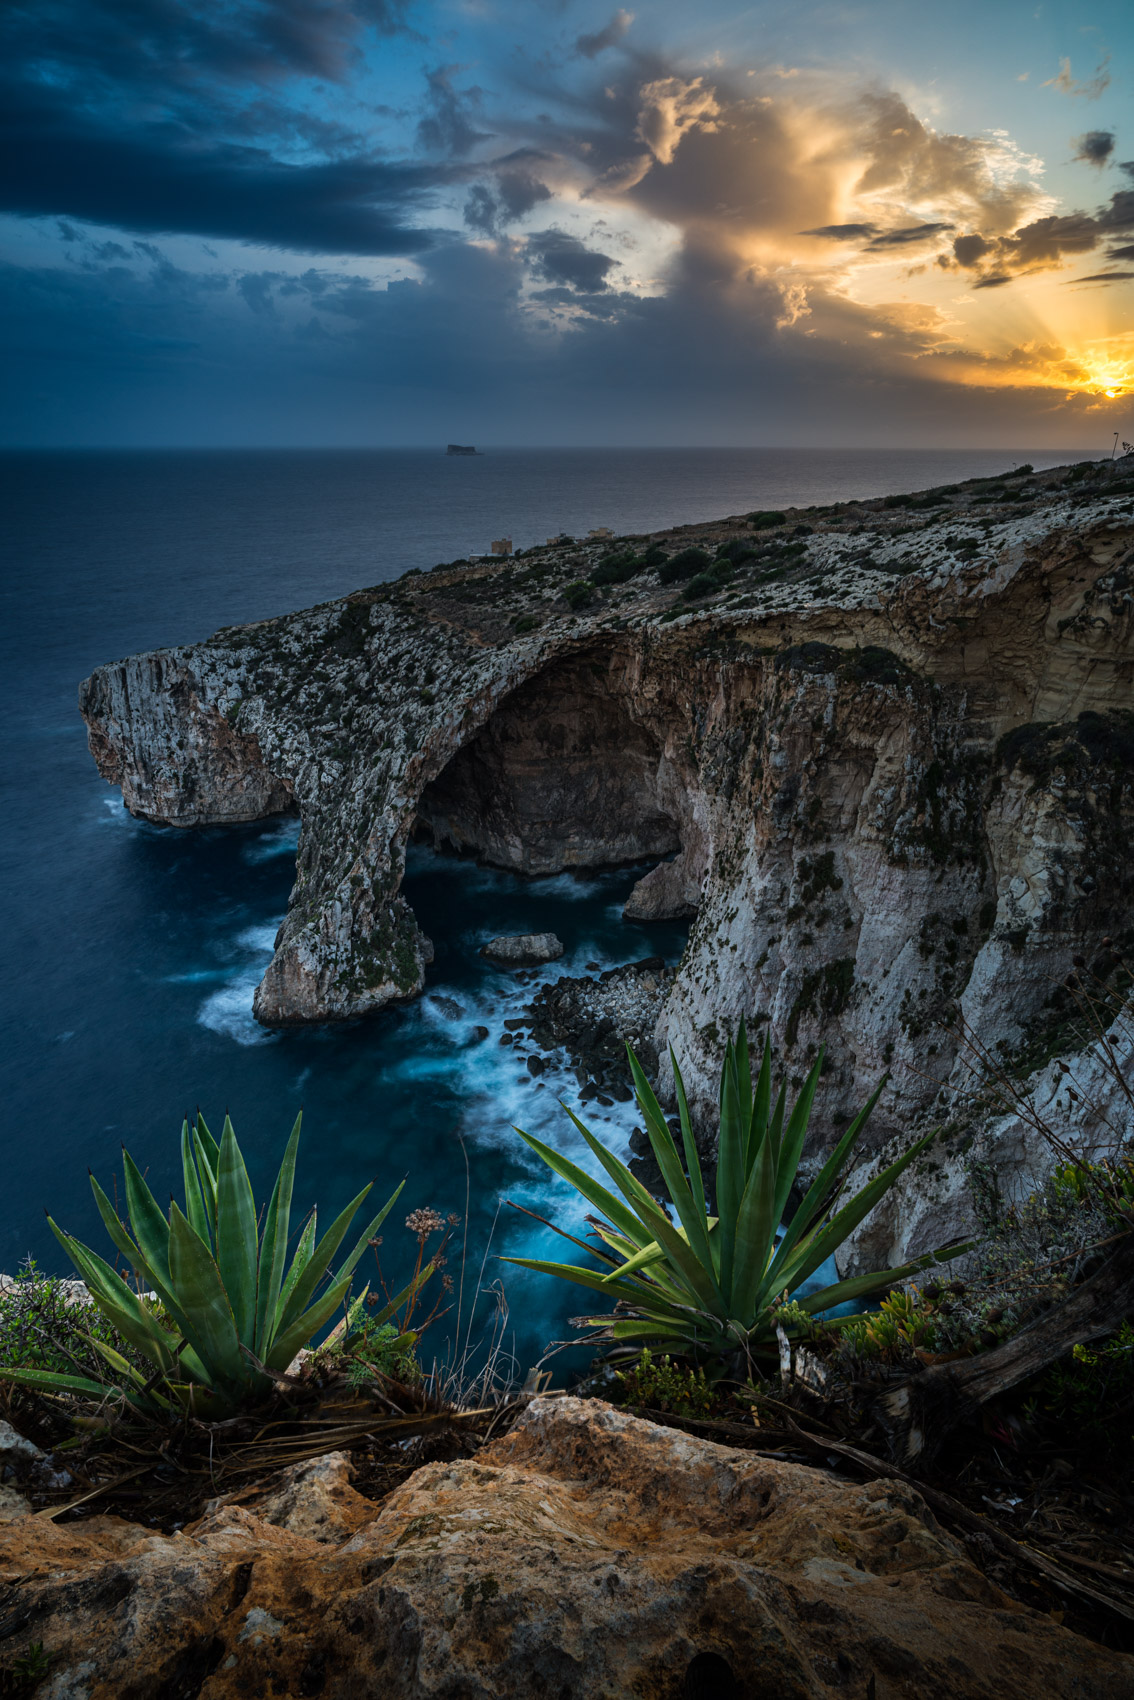 Blue grotto at sunset. - Technical details: 2.5 sec at f/11, iso 100